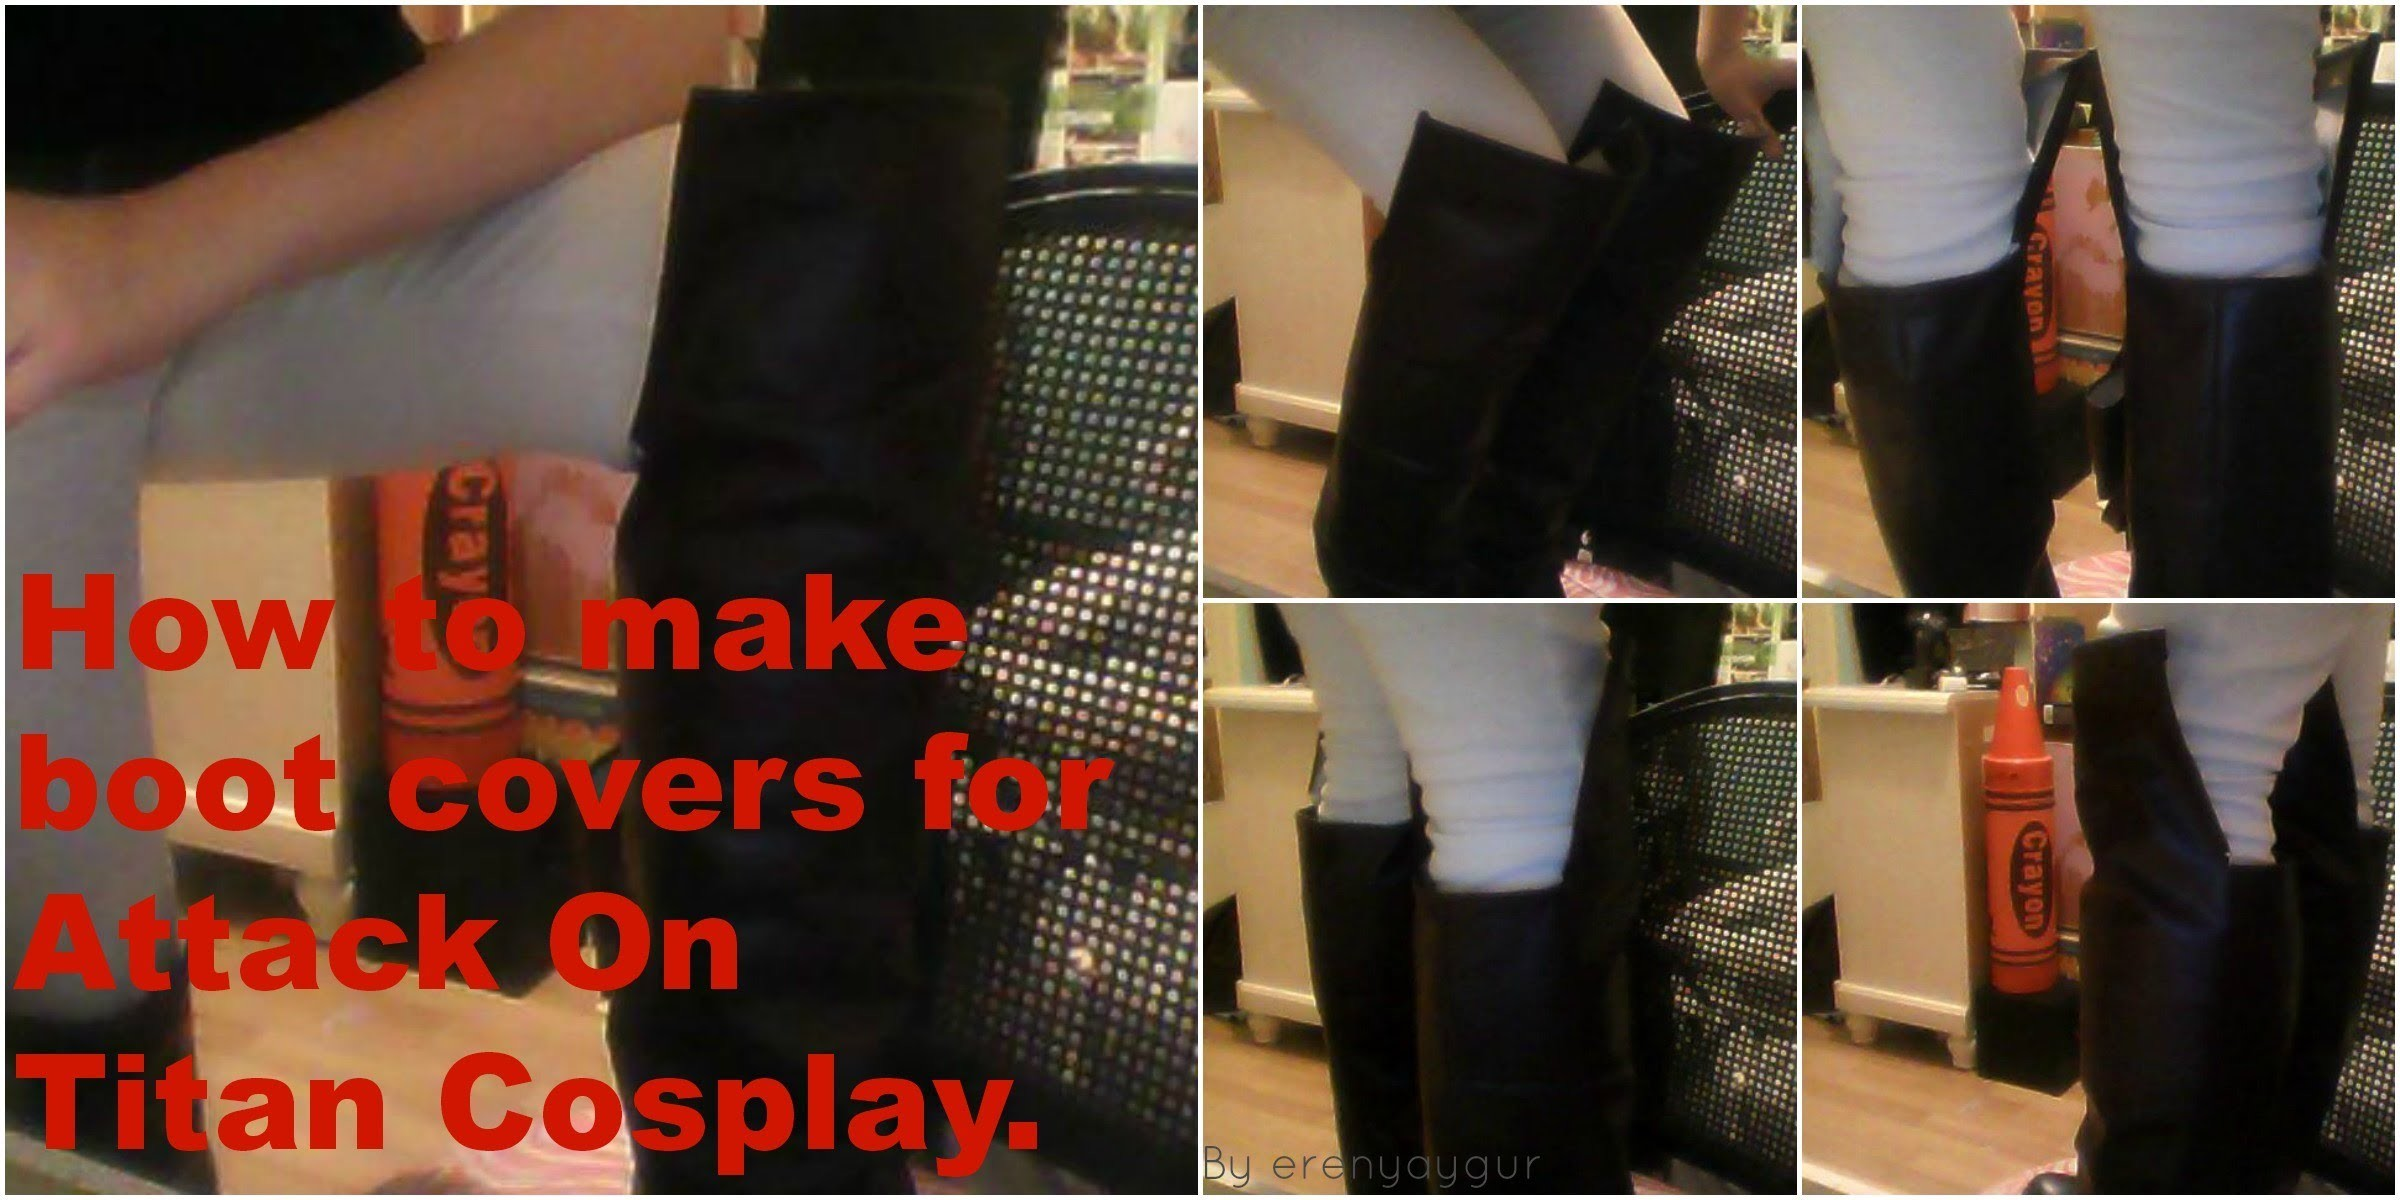 How to make boot covers for Attack On Titan Cosplay.